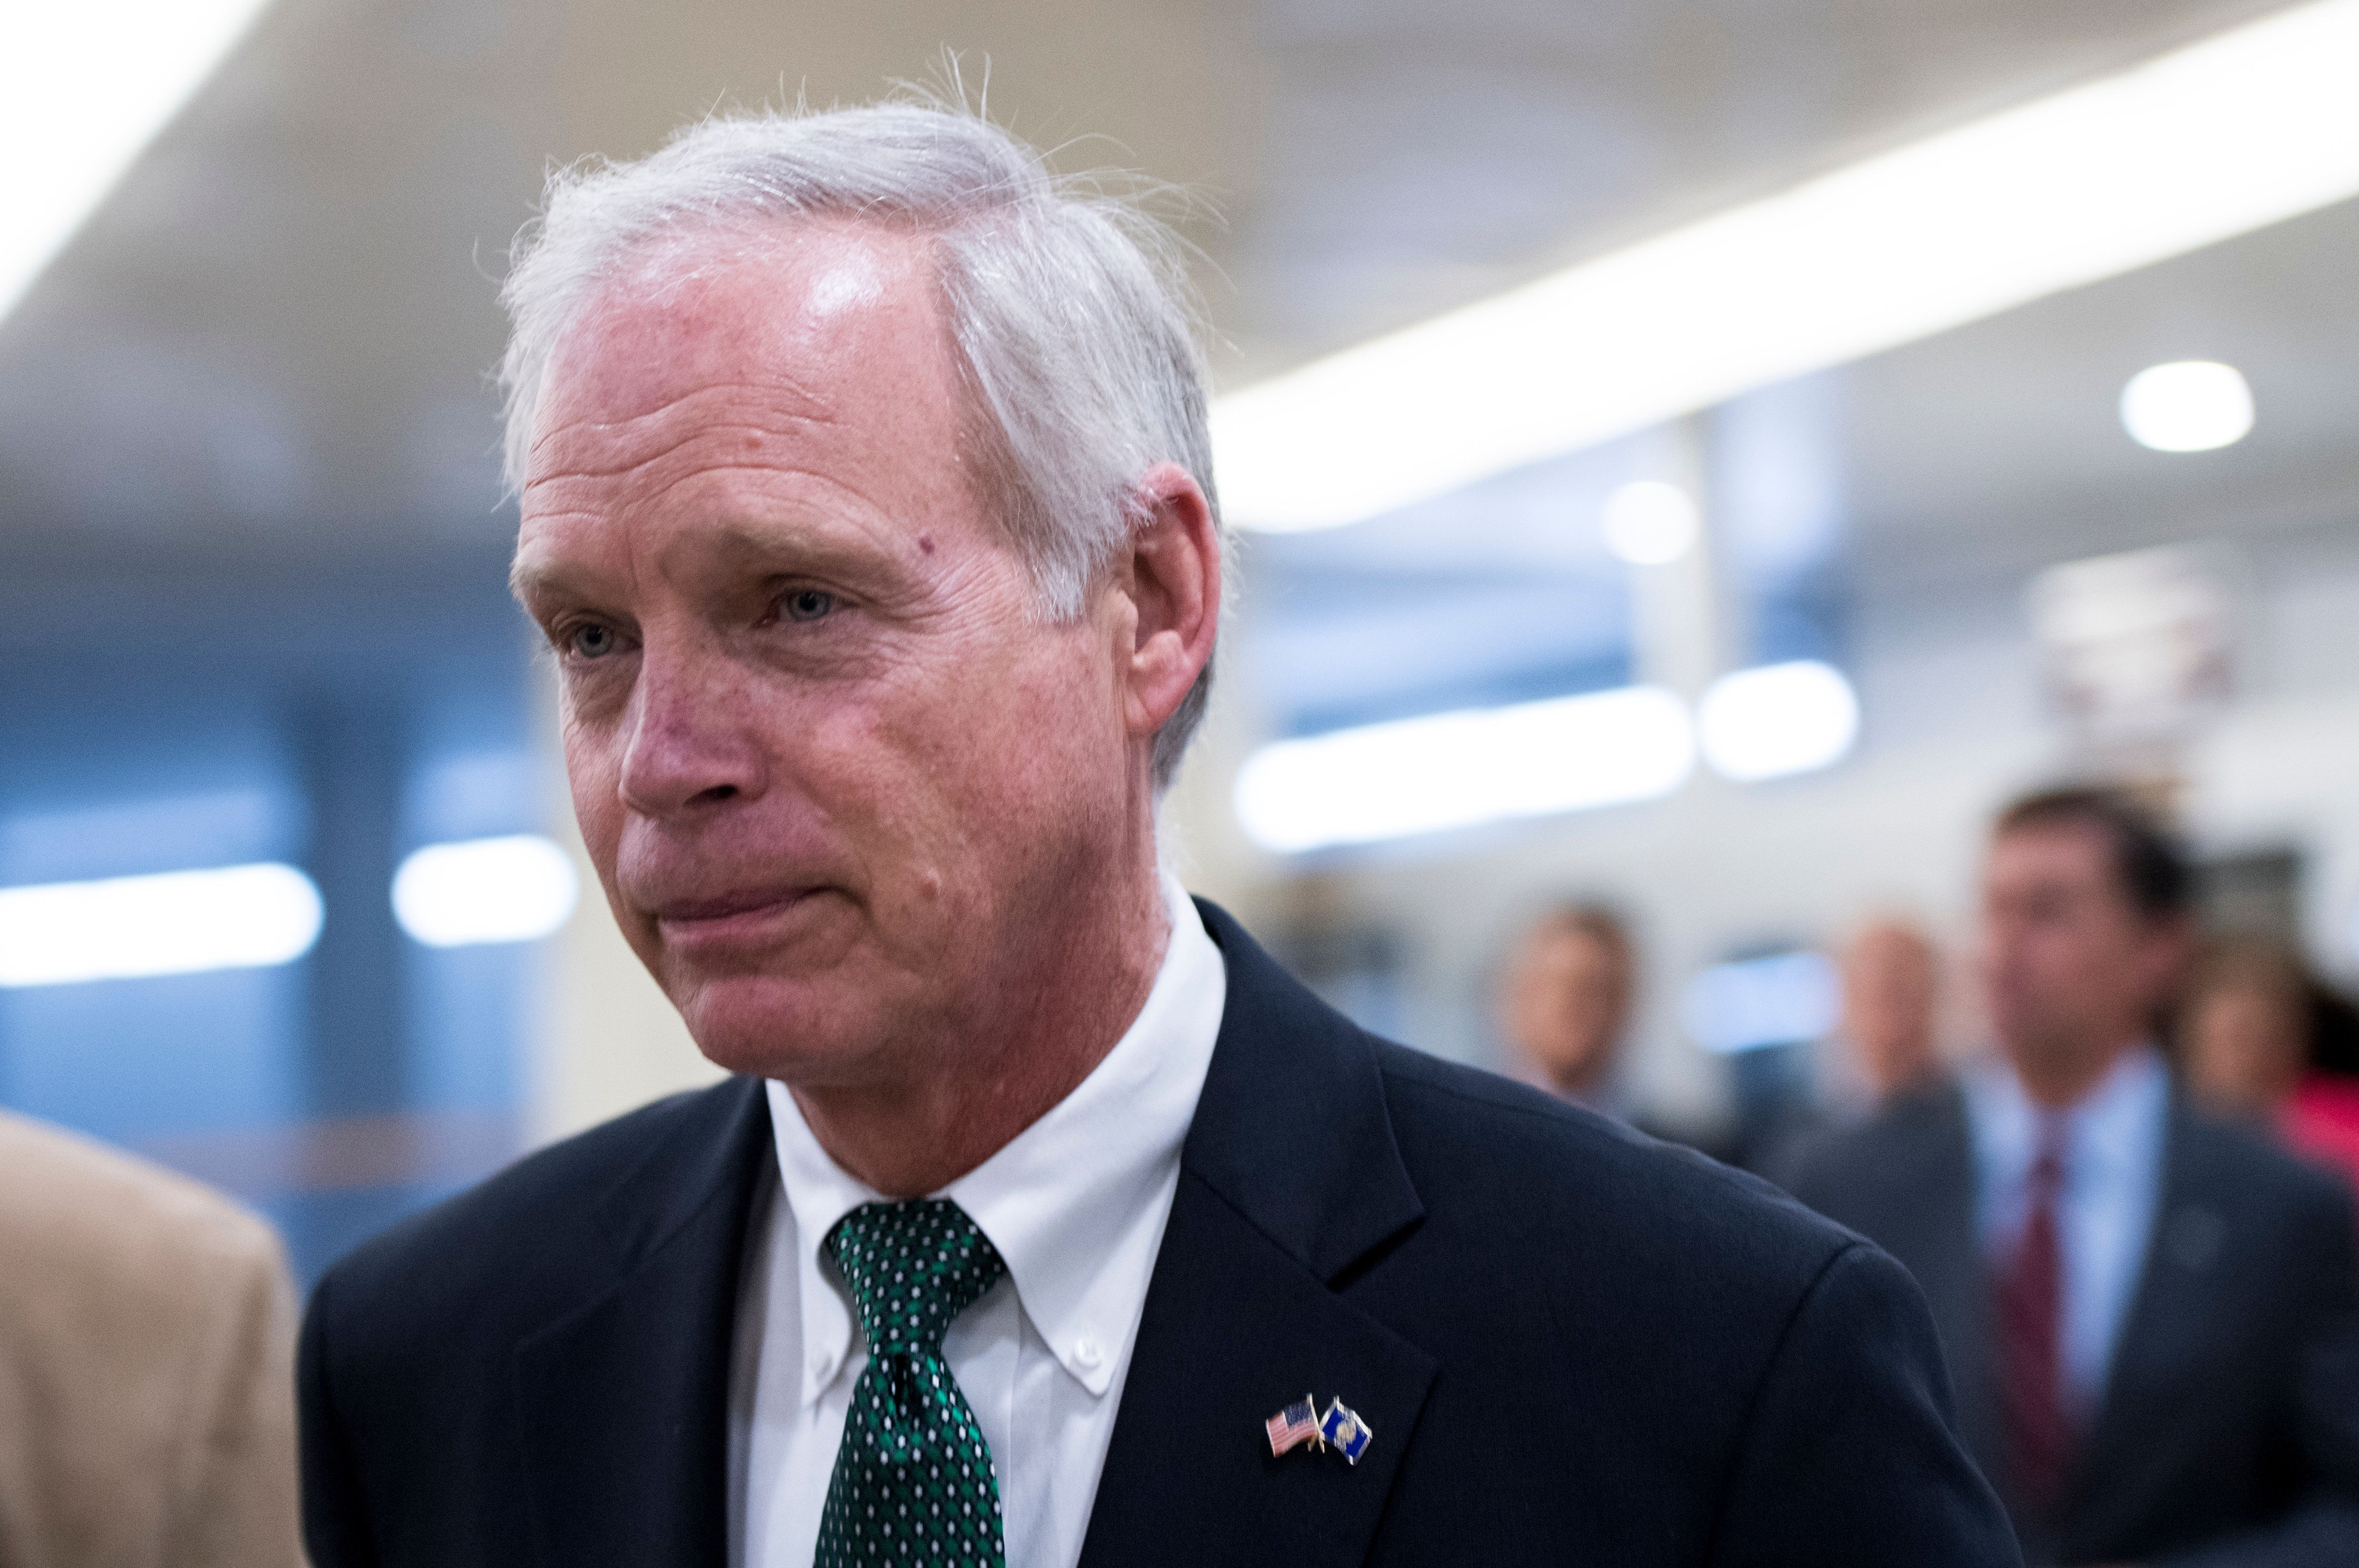 UNITED STATES - SEPTEMBER 15: Sen. Ron Johnson, R-Wisc., arrives in the Capitol for a vote on Thursday, September 15, 2016. (Photo By Bill Clark/CQ Roll Call)